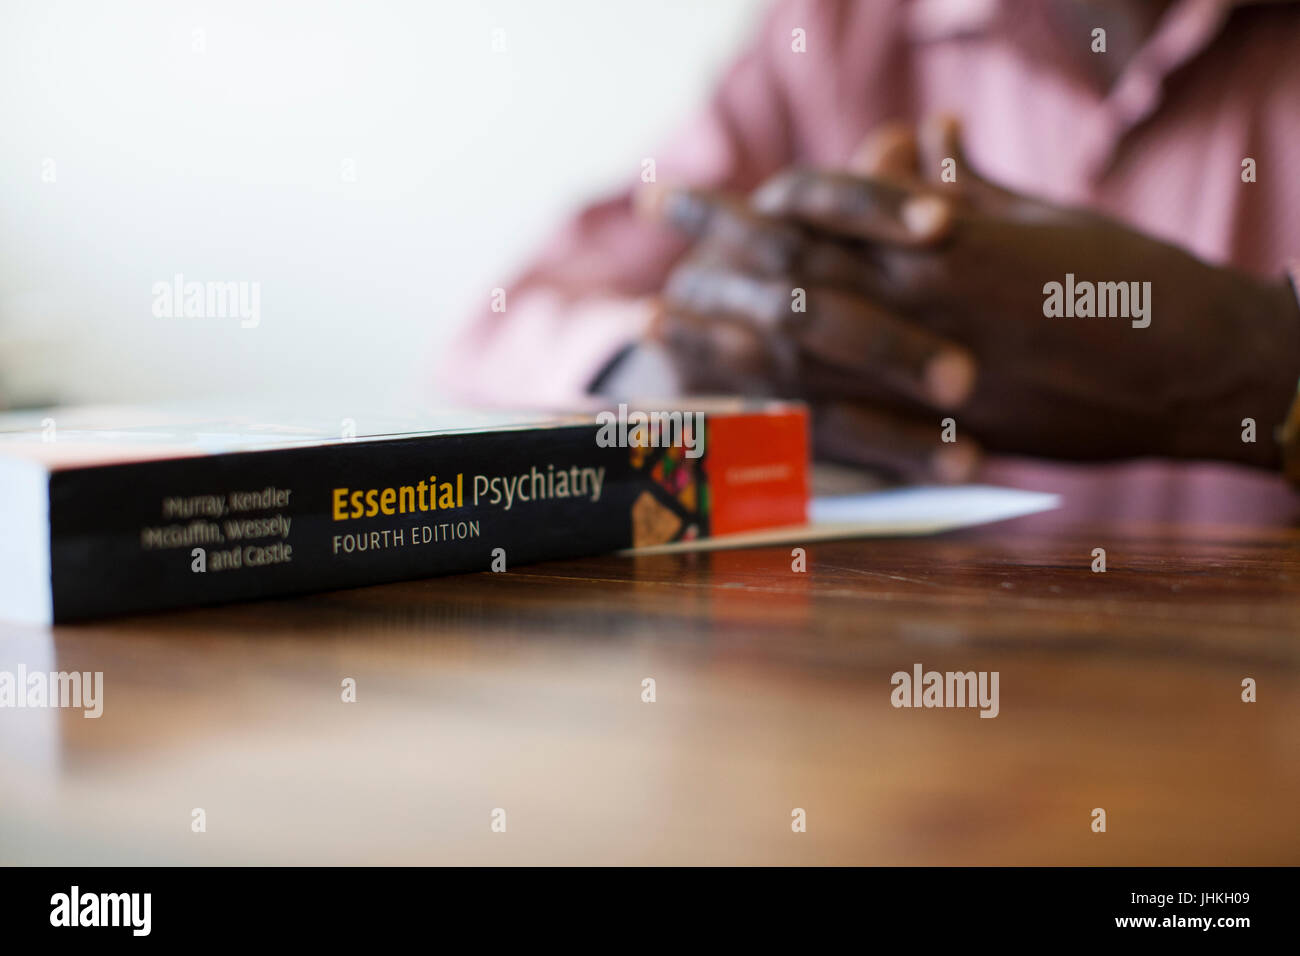 A book called Essential Psychiatry sitting in front of someone on a desk. - Stock Image